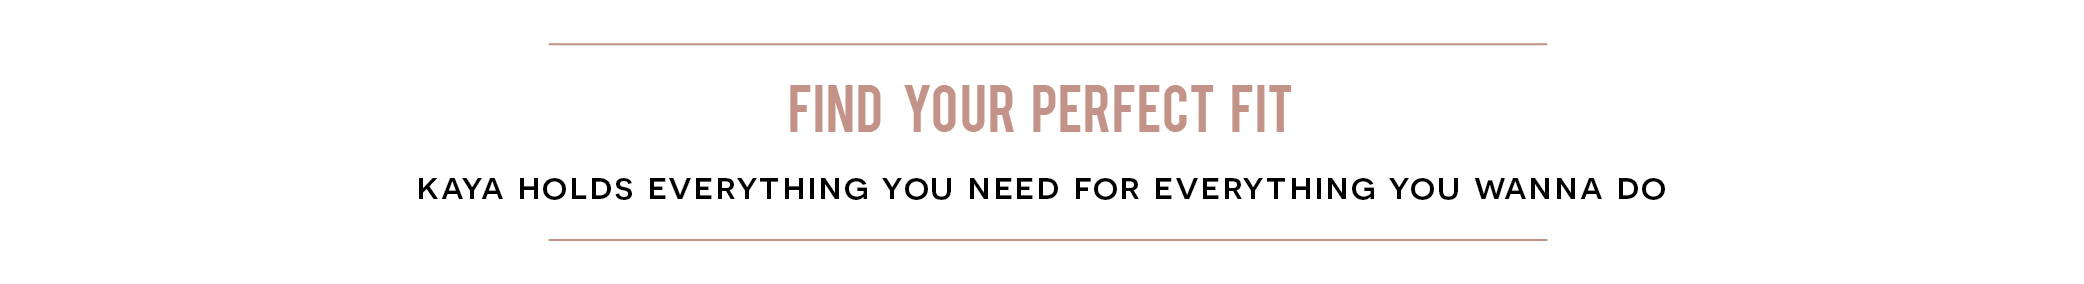 FIND YOUR PERFECT FIT